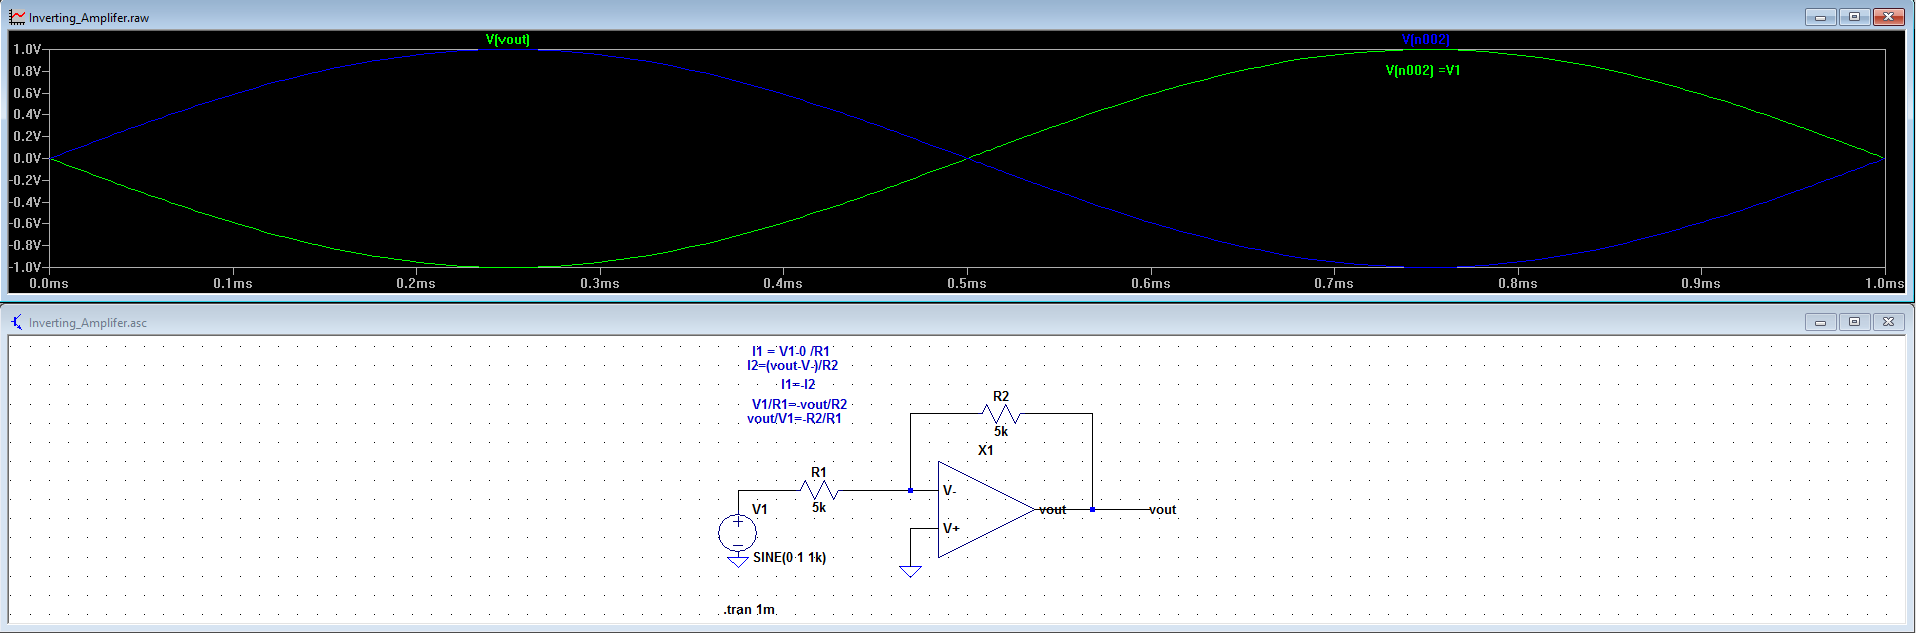 Introduction To Operational Amplifiers With Ltspice Simple Audio Circuit Using Lm386 Project The Summing Amplifier